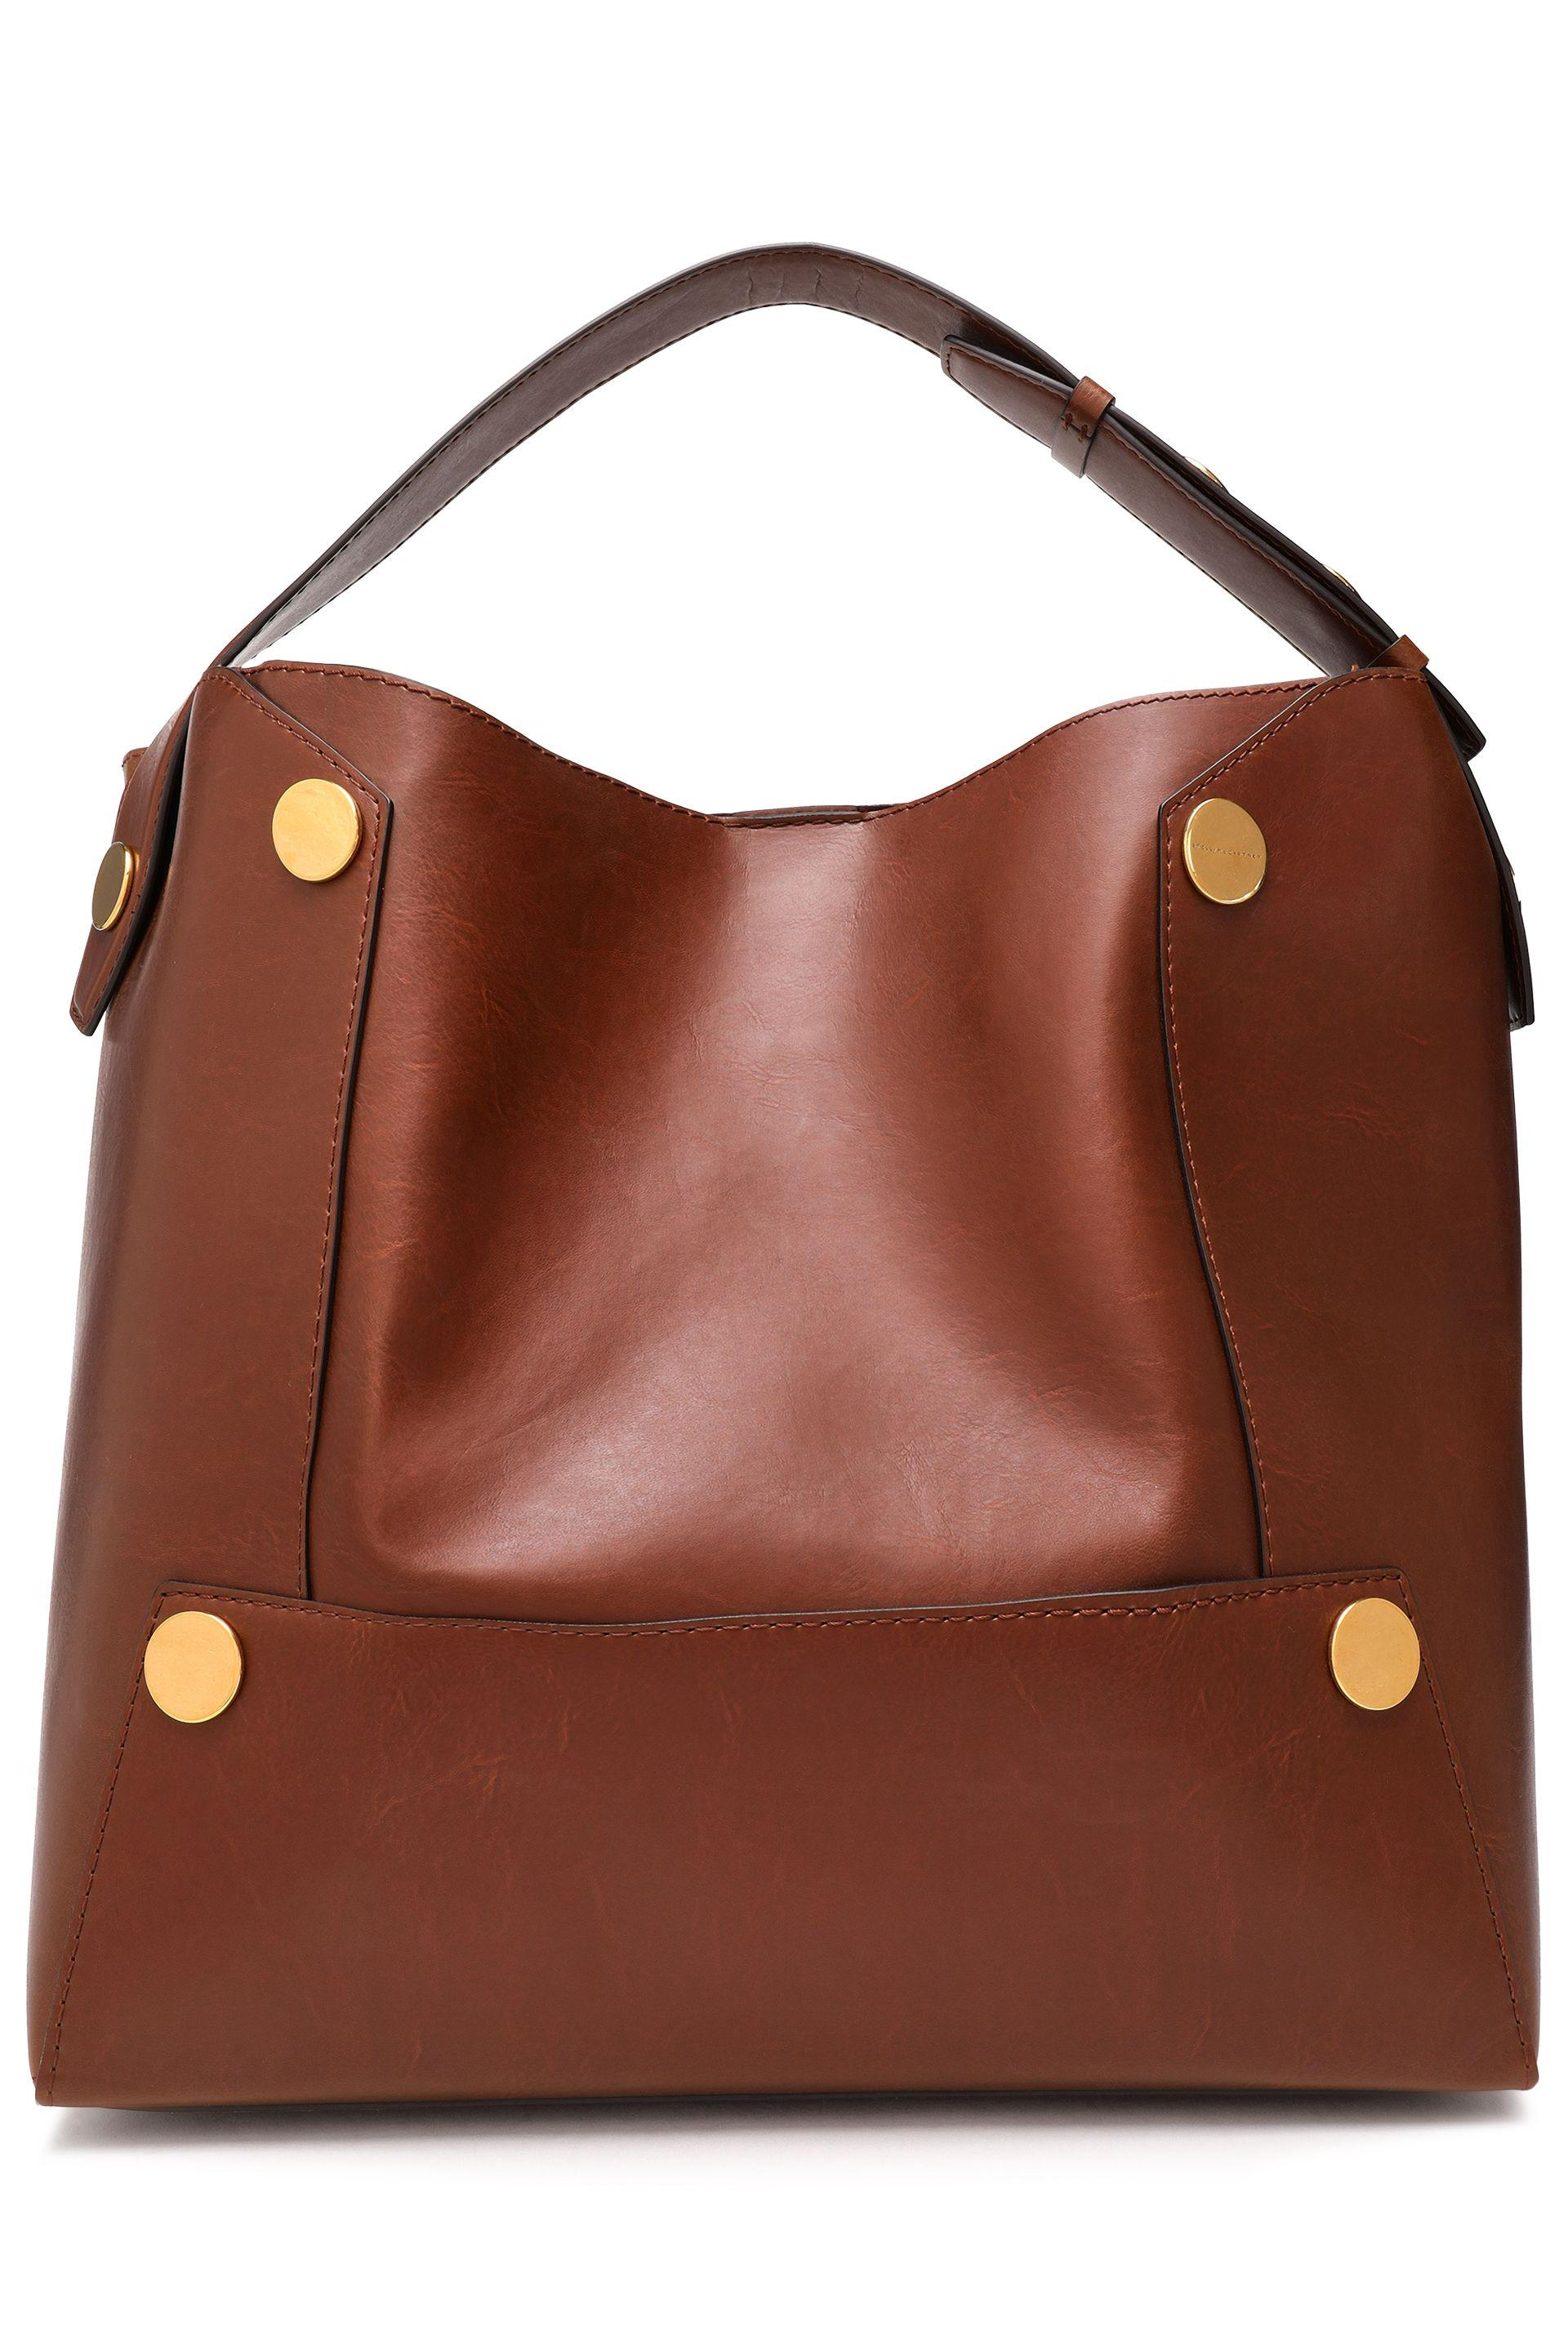 f2490315b7c6 Stella McCartney Woman Embellished Faux Leather Tote Brown in Brown ...